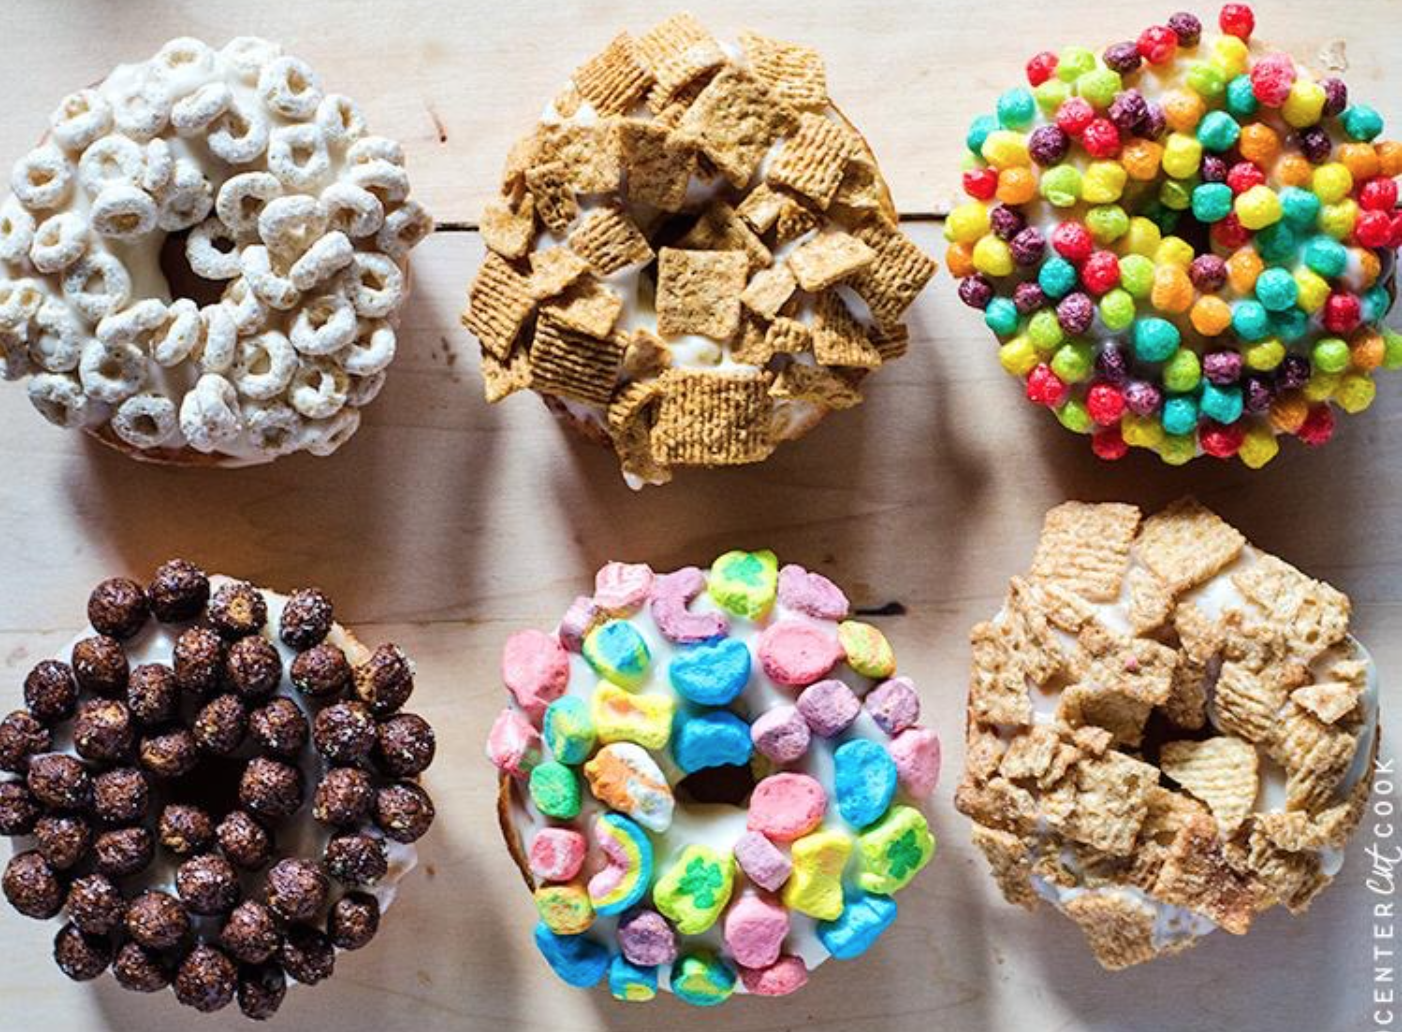 Breakfast Cereal Donut